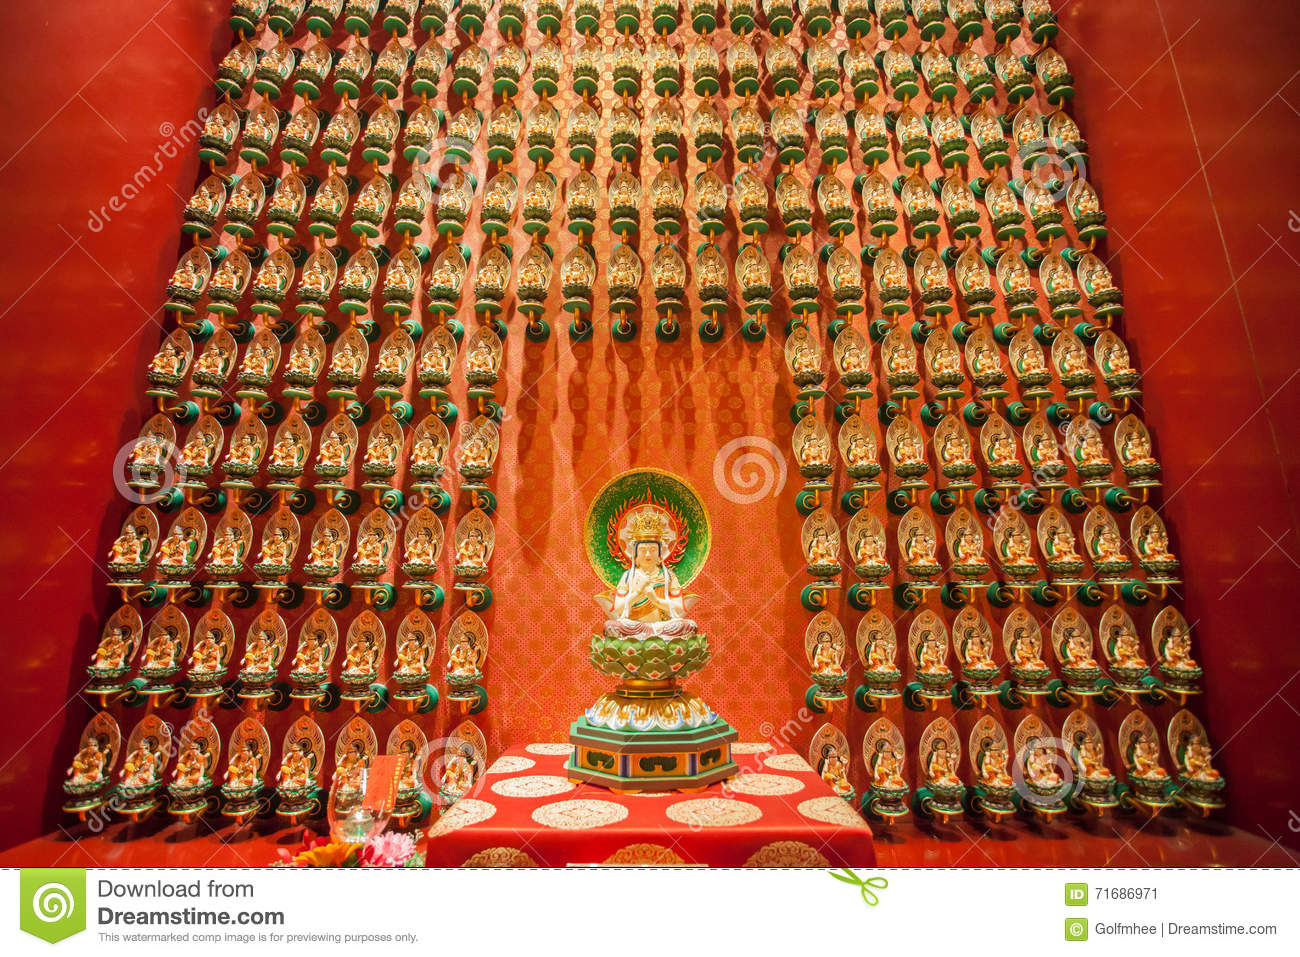 SINGAPORE/SINGAPORE - 27 MARS 2014 : Temple chinois rouge, Bouddha